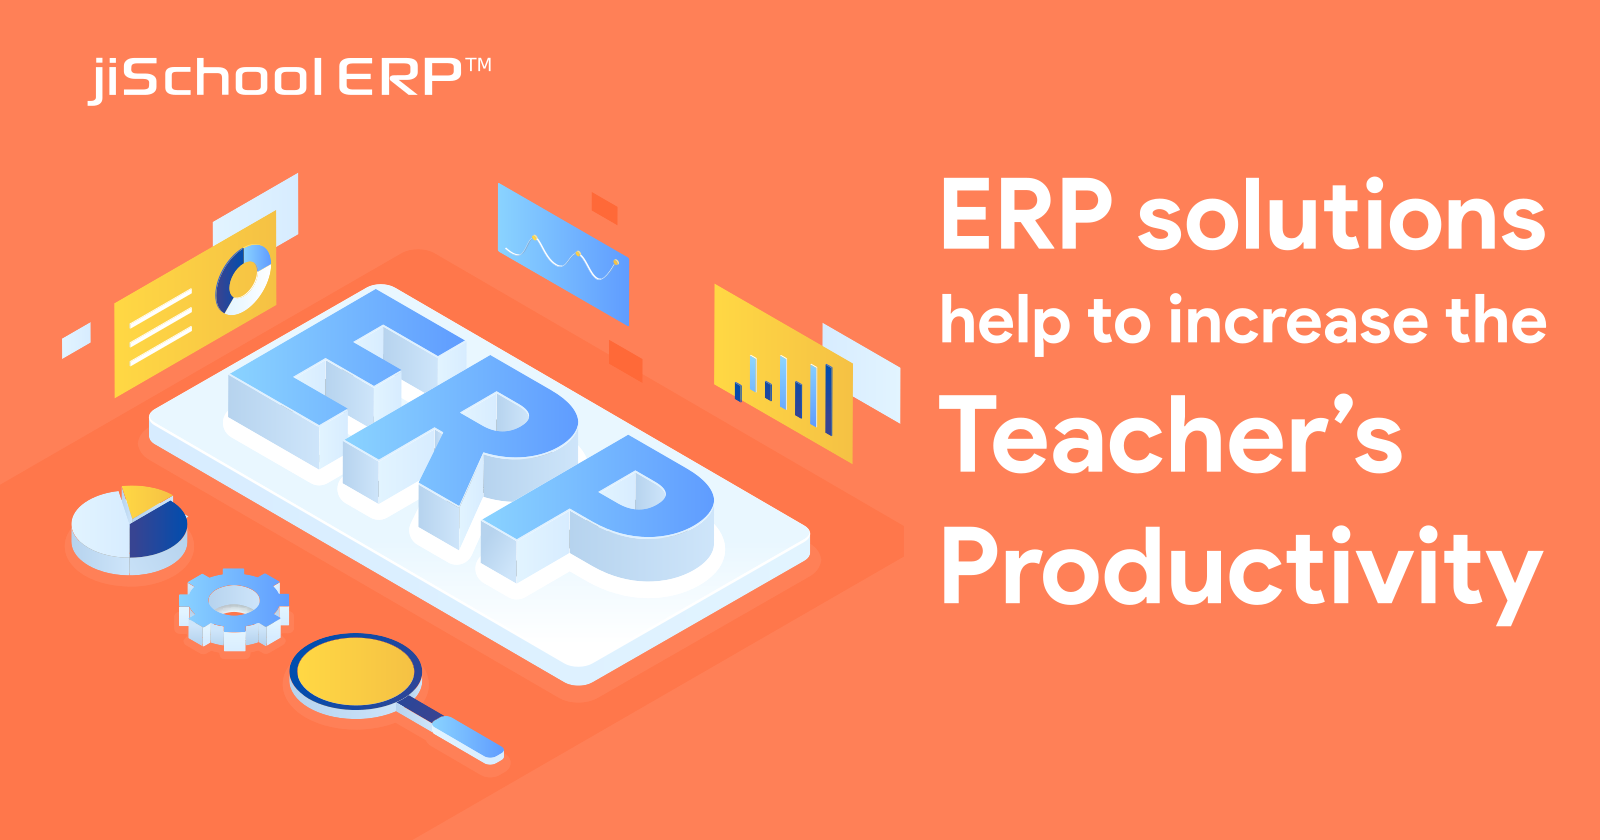 How can ERP solutions help to improve the teacher's productivity?